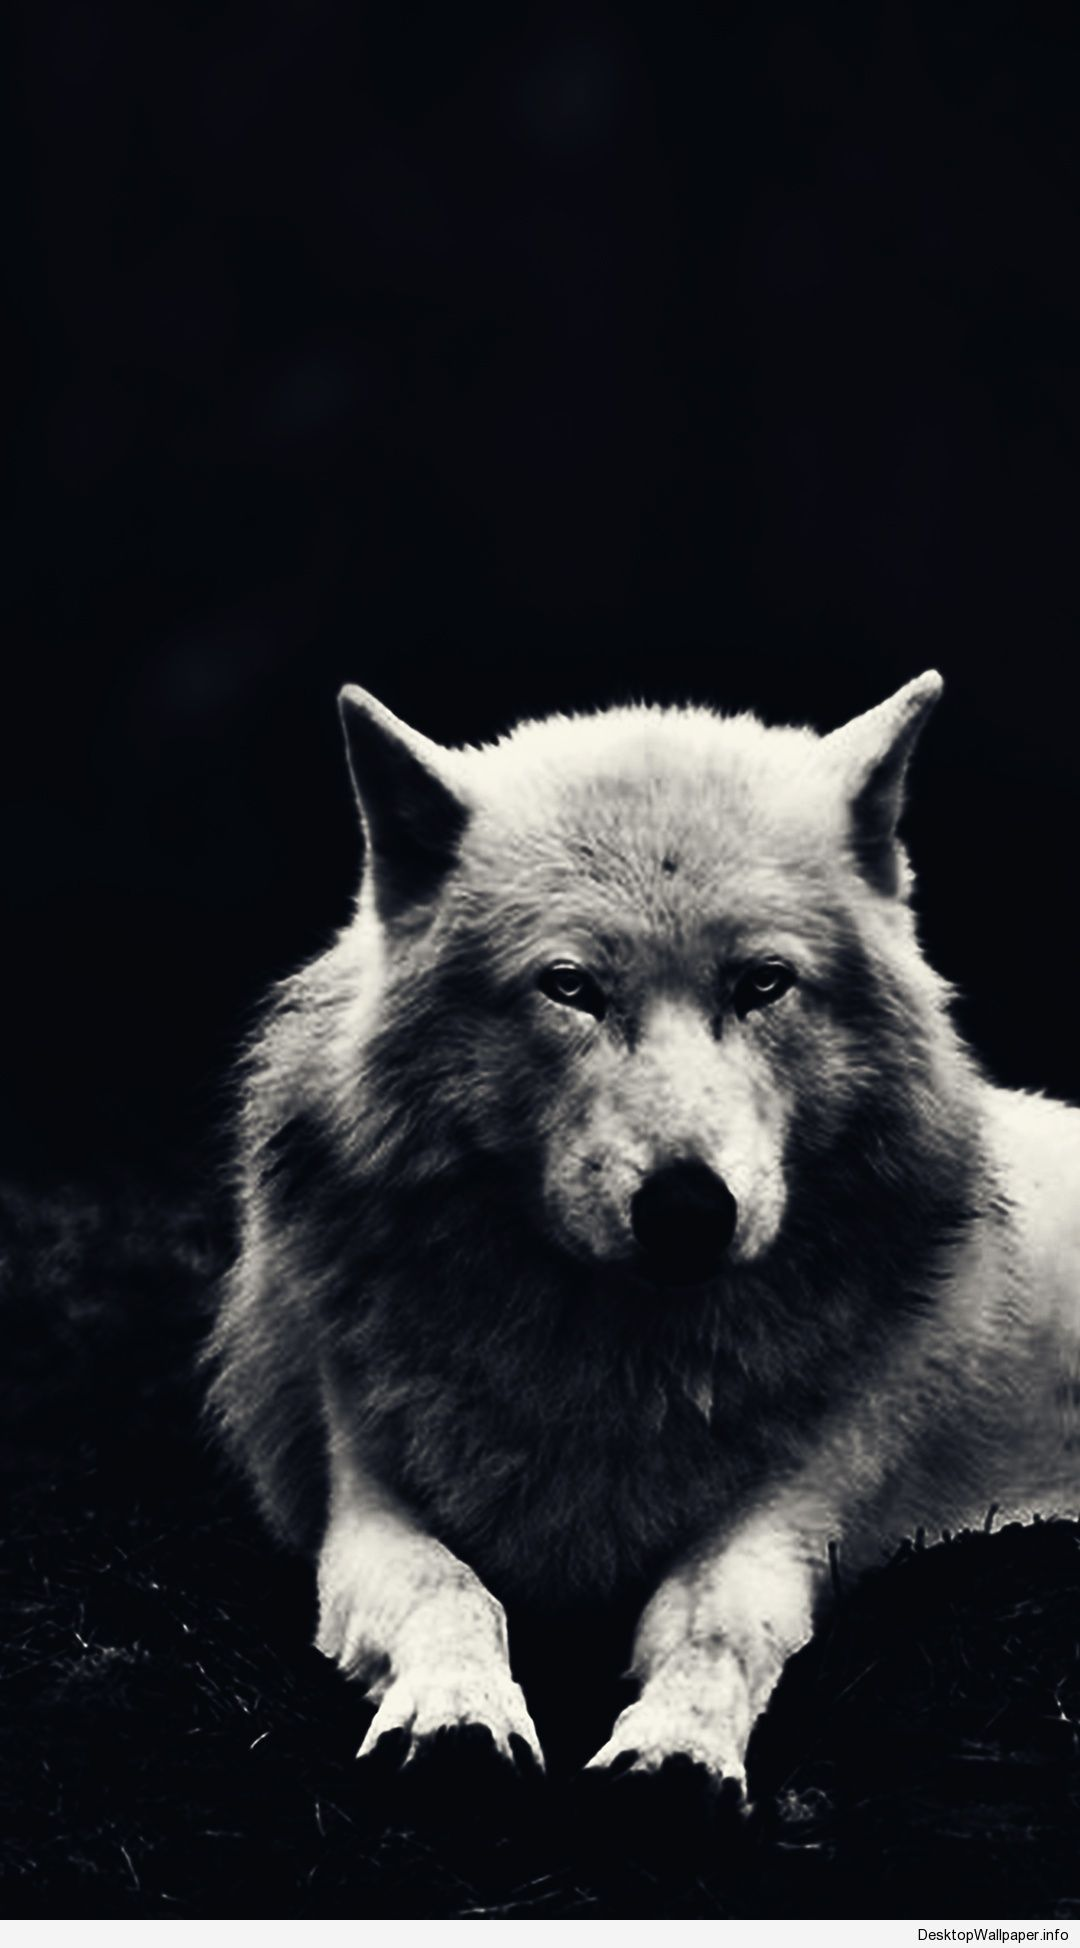 60 Wolf Hd Wallpapers Desktop Background Android Iphone 1080p 4k 1080x1948 2020